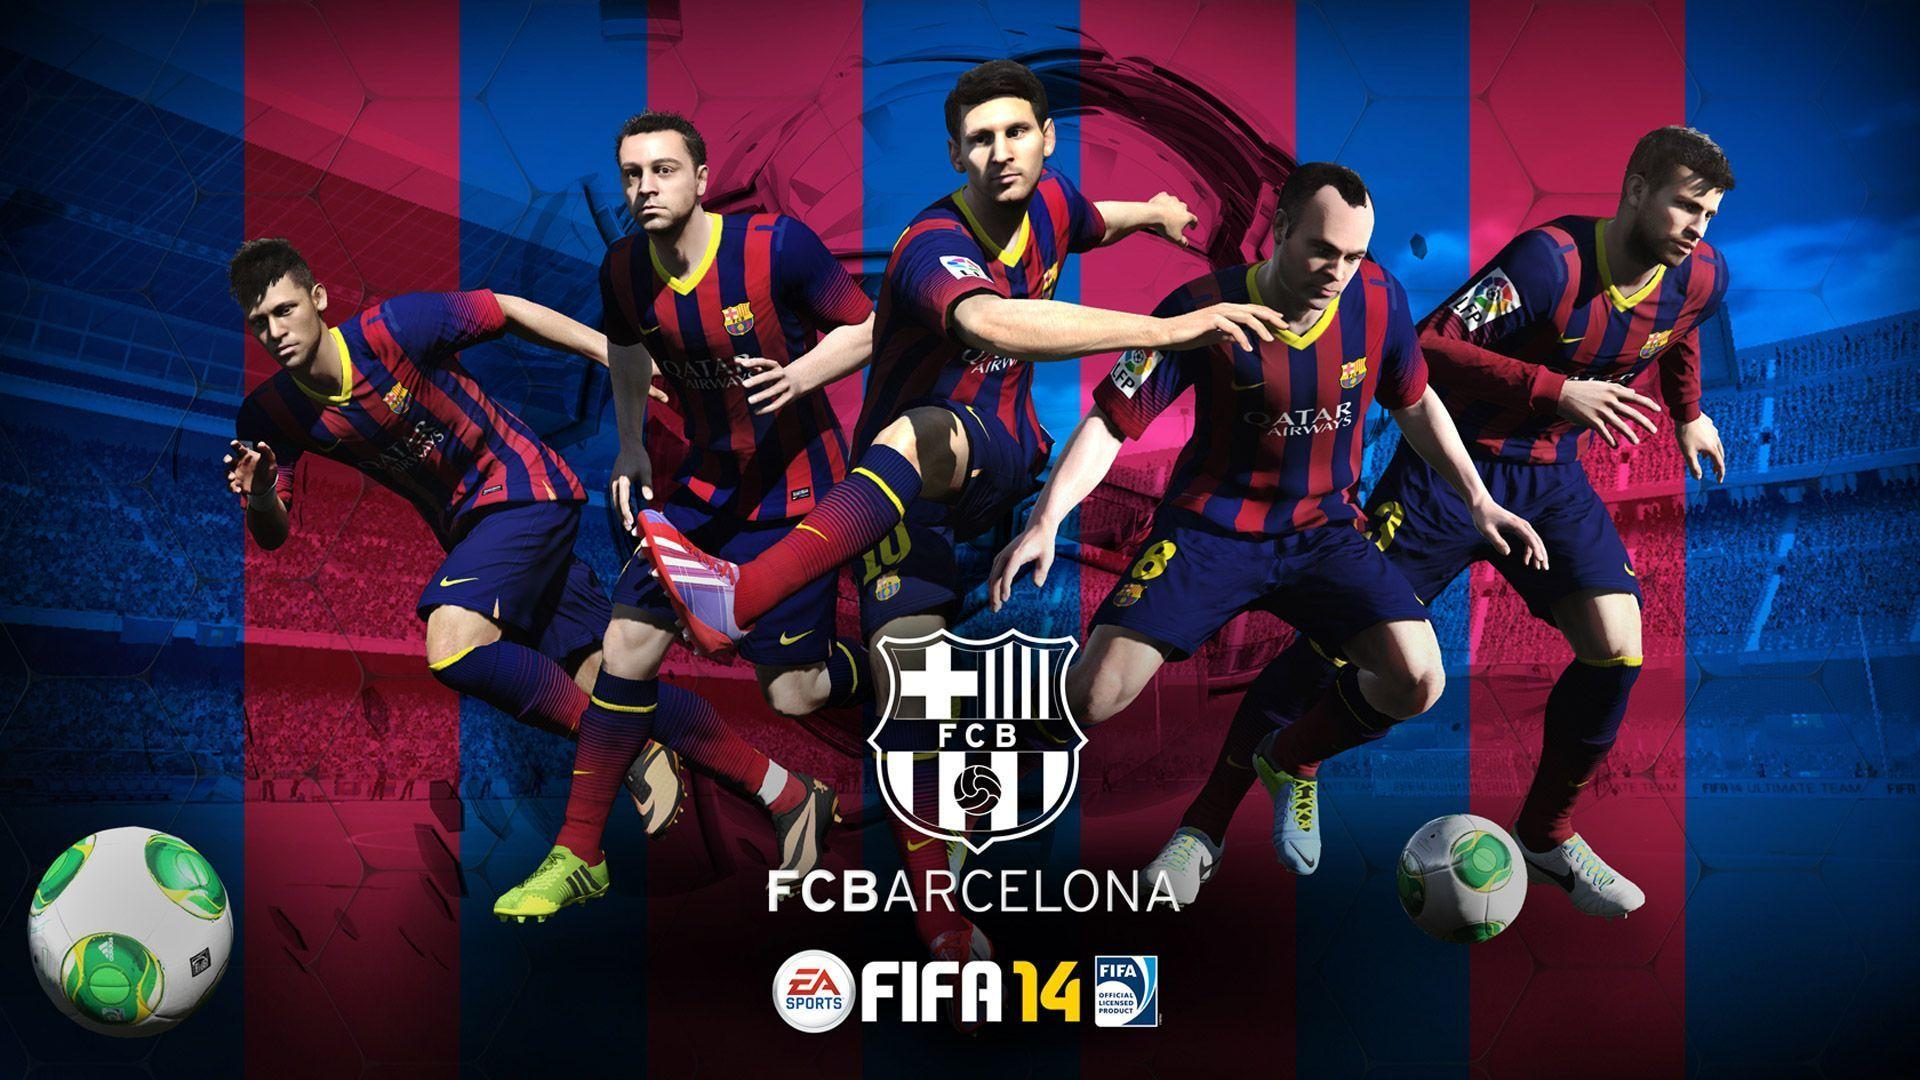 Lionel messi 2015 1080p hd wallpapers wallpaper cave fifa 2014 game hd wallpapers 1080p widescreen wallpapers high voltagebd Image collections